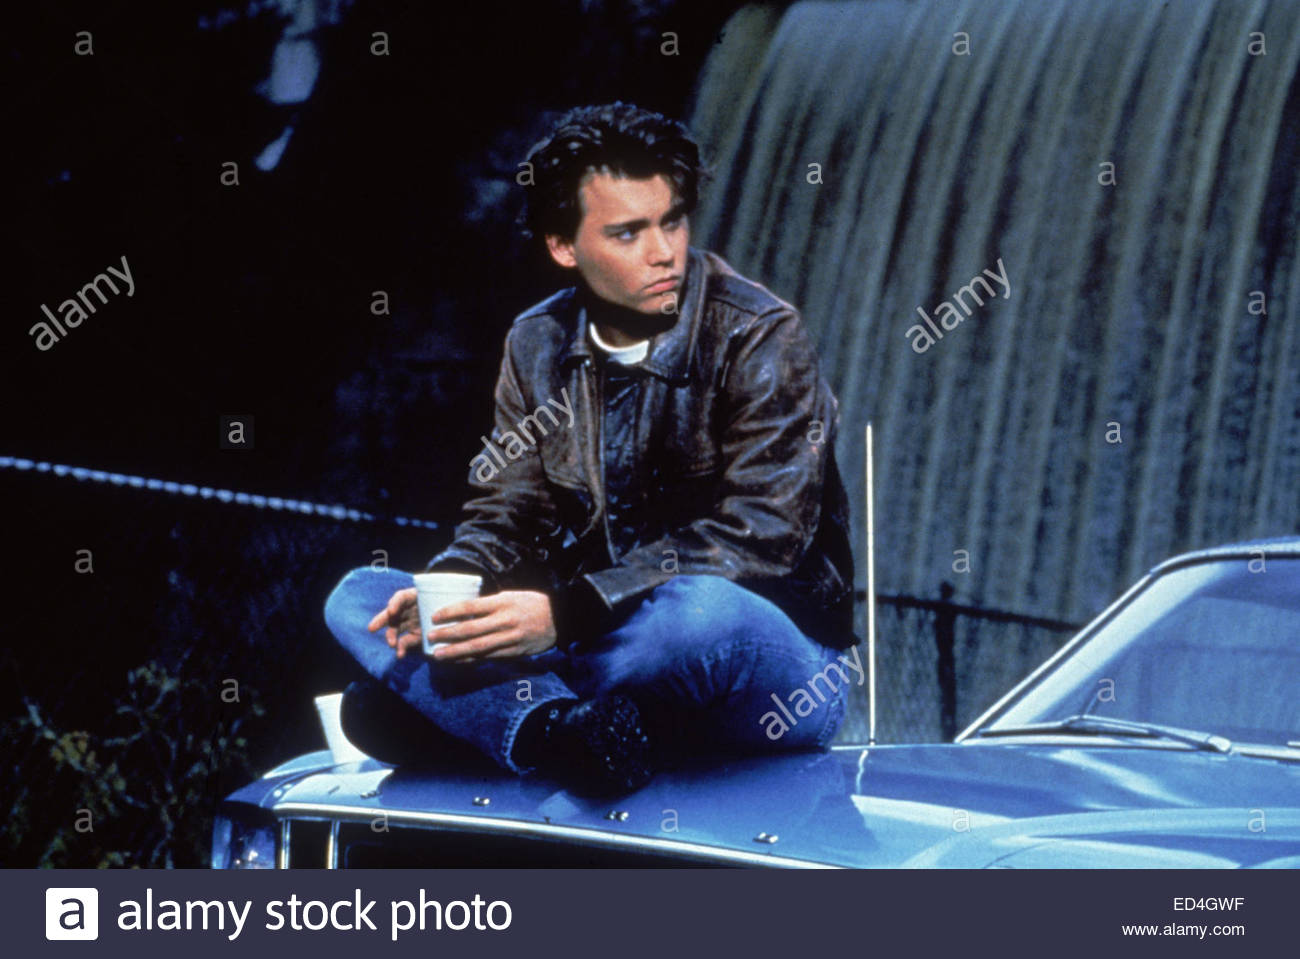 21 JUMP STREET (circa 1980s) Pictured:  Johnny Depp.  Courtesy Granamour Weems Collection.  Editorial use only. - Stock Image